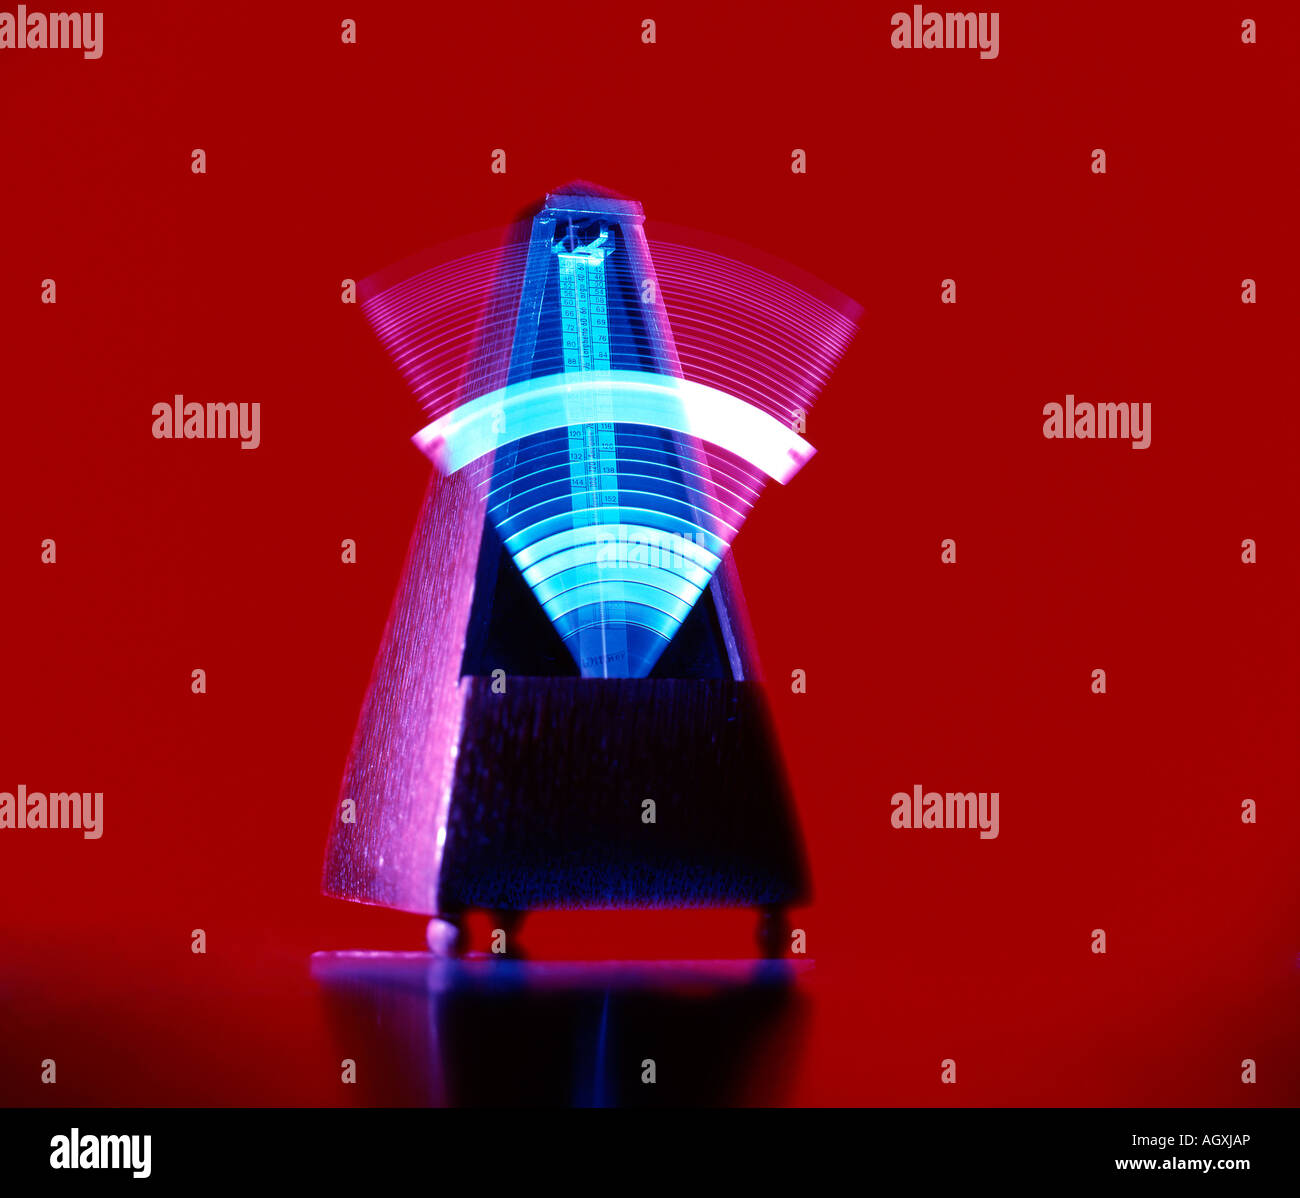 metronome with movement - Stock Image